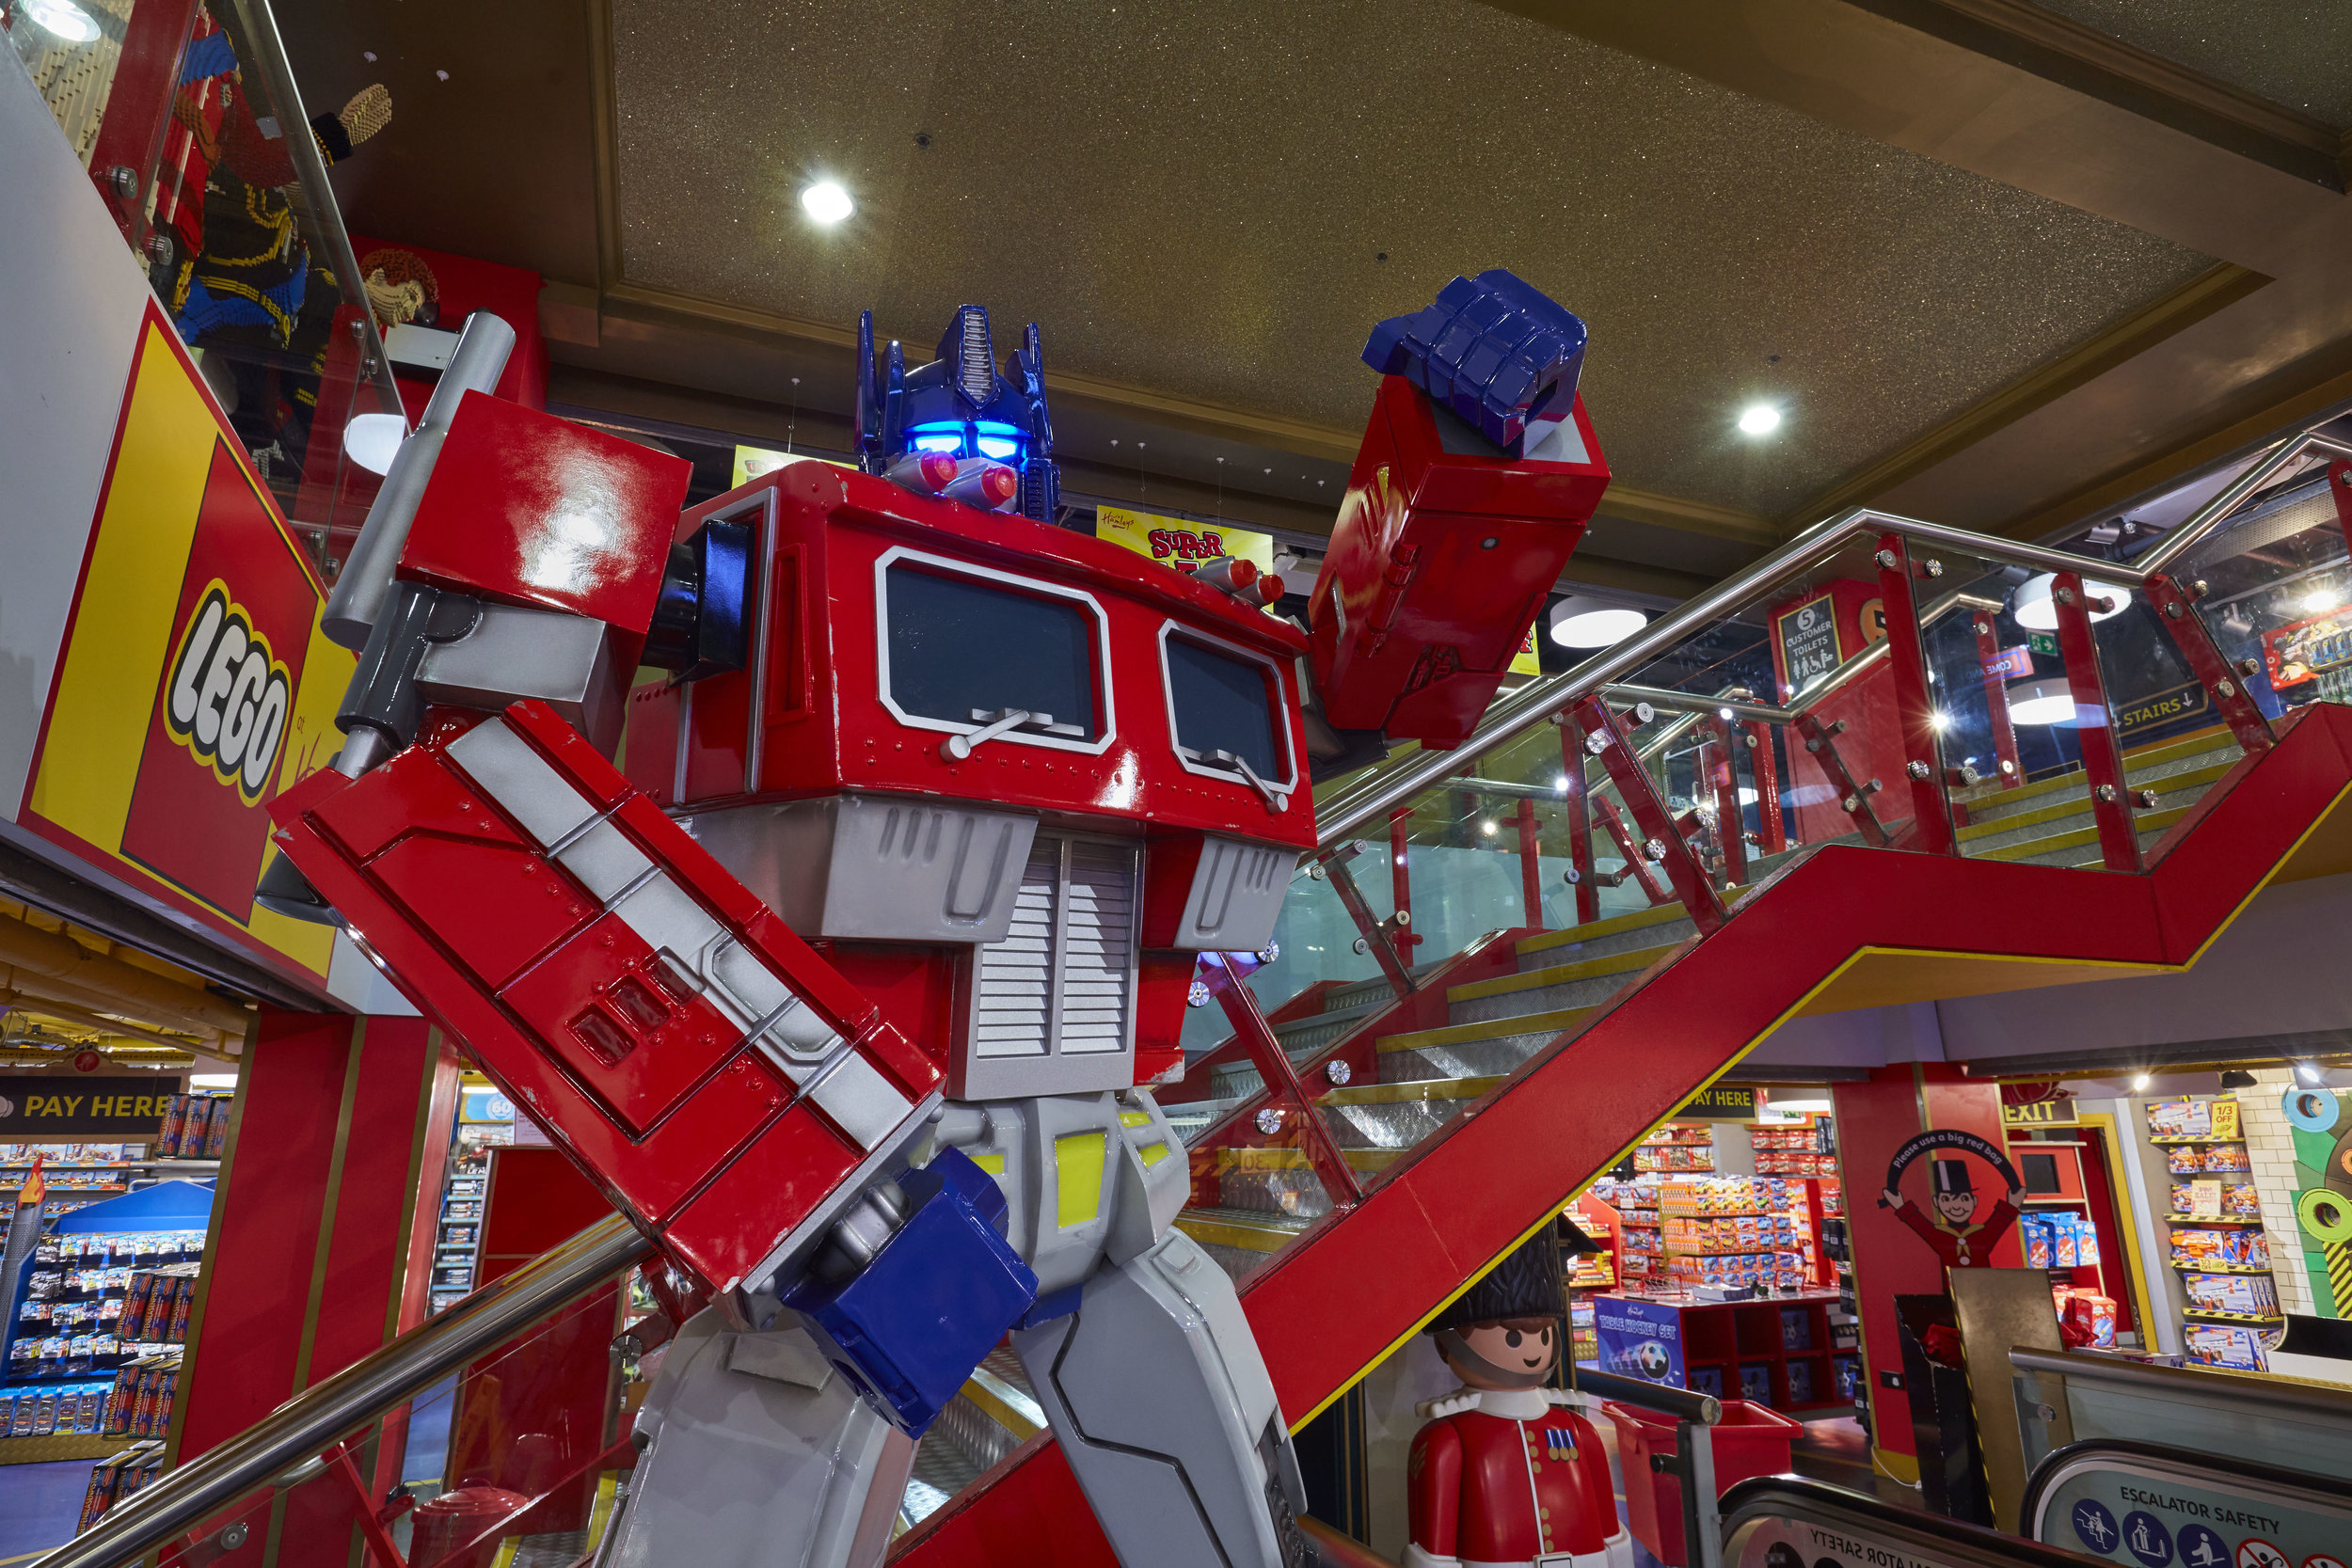 TRANSFORMERS THE LAST KNIGHT - HAMLEYS LONDON    June 2017